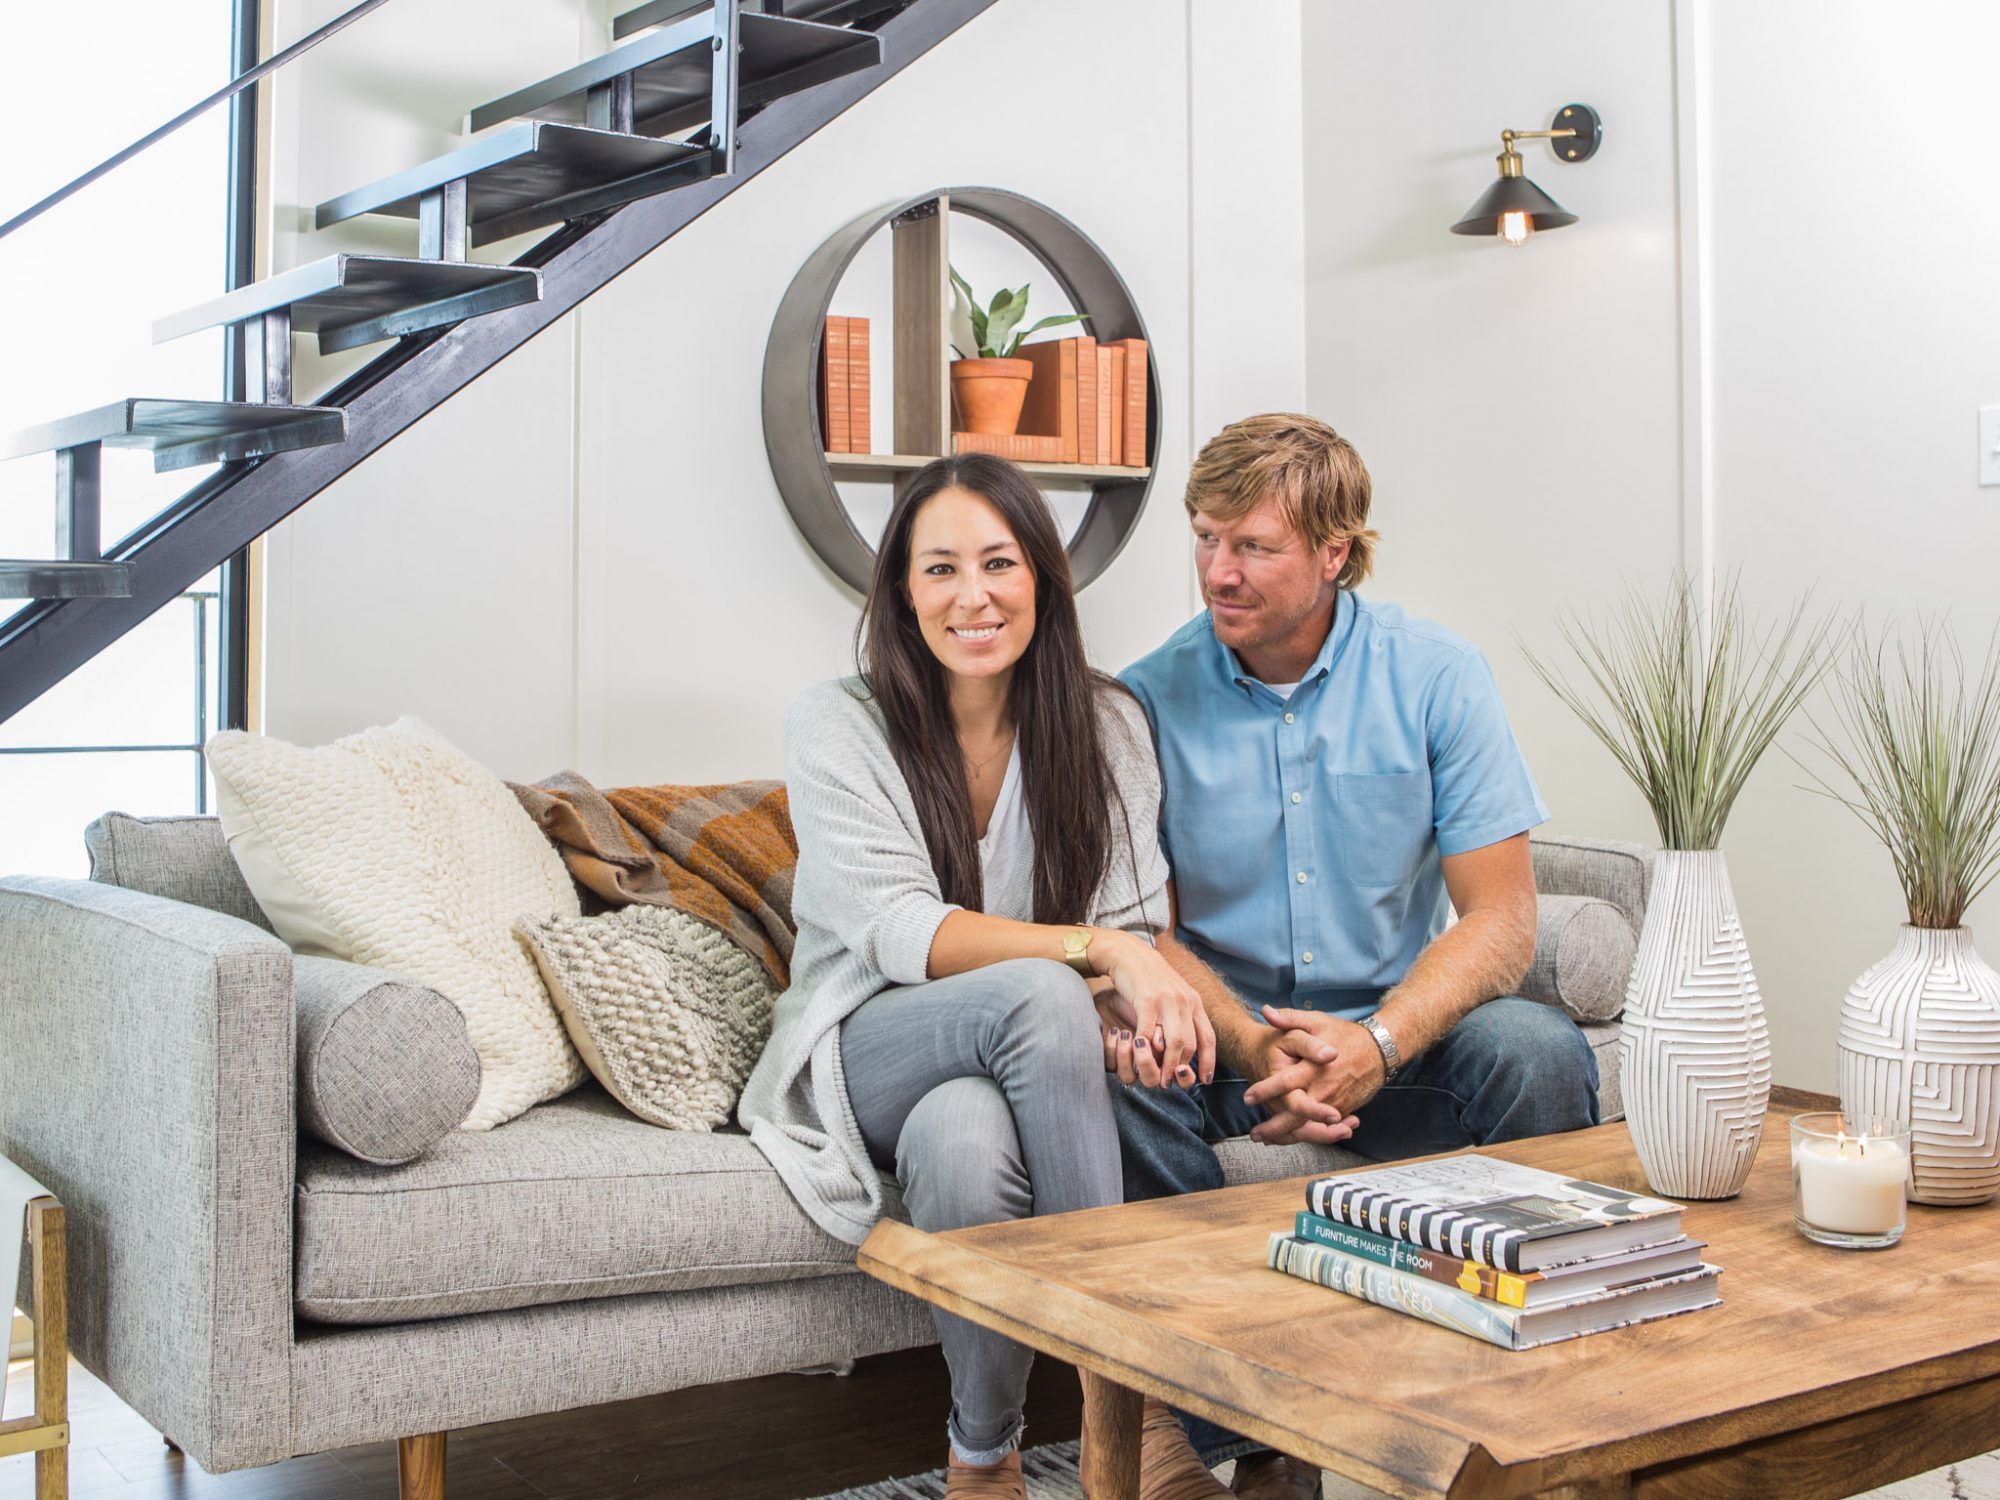 Fixer Upper House Boat: Chip and Joanna